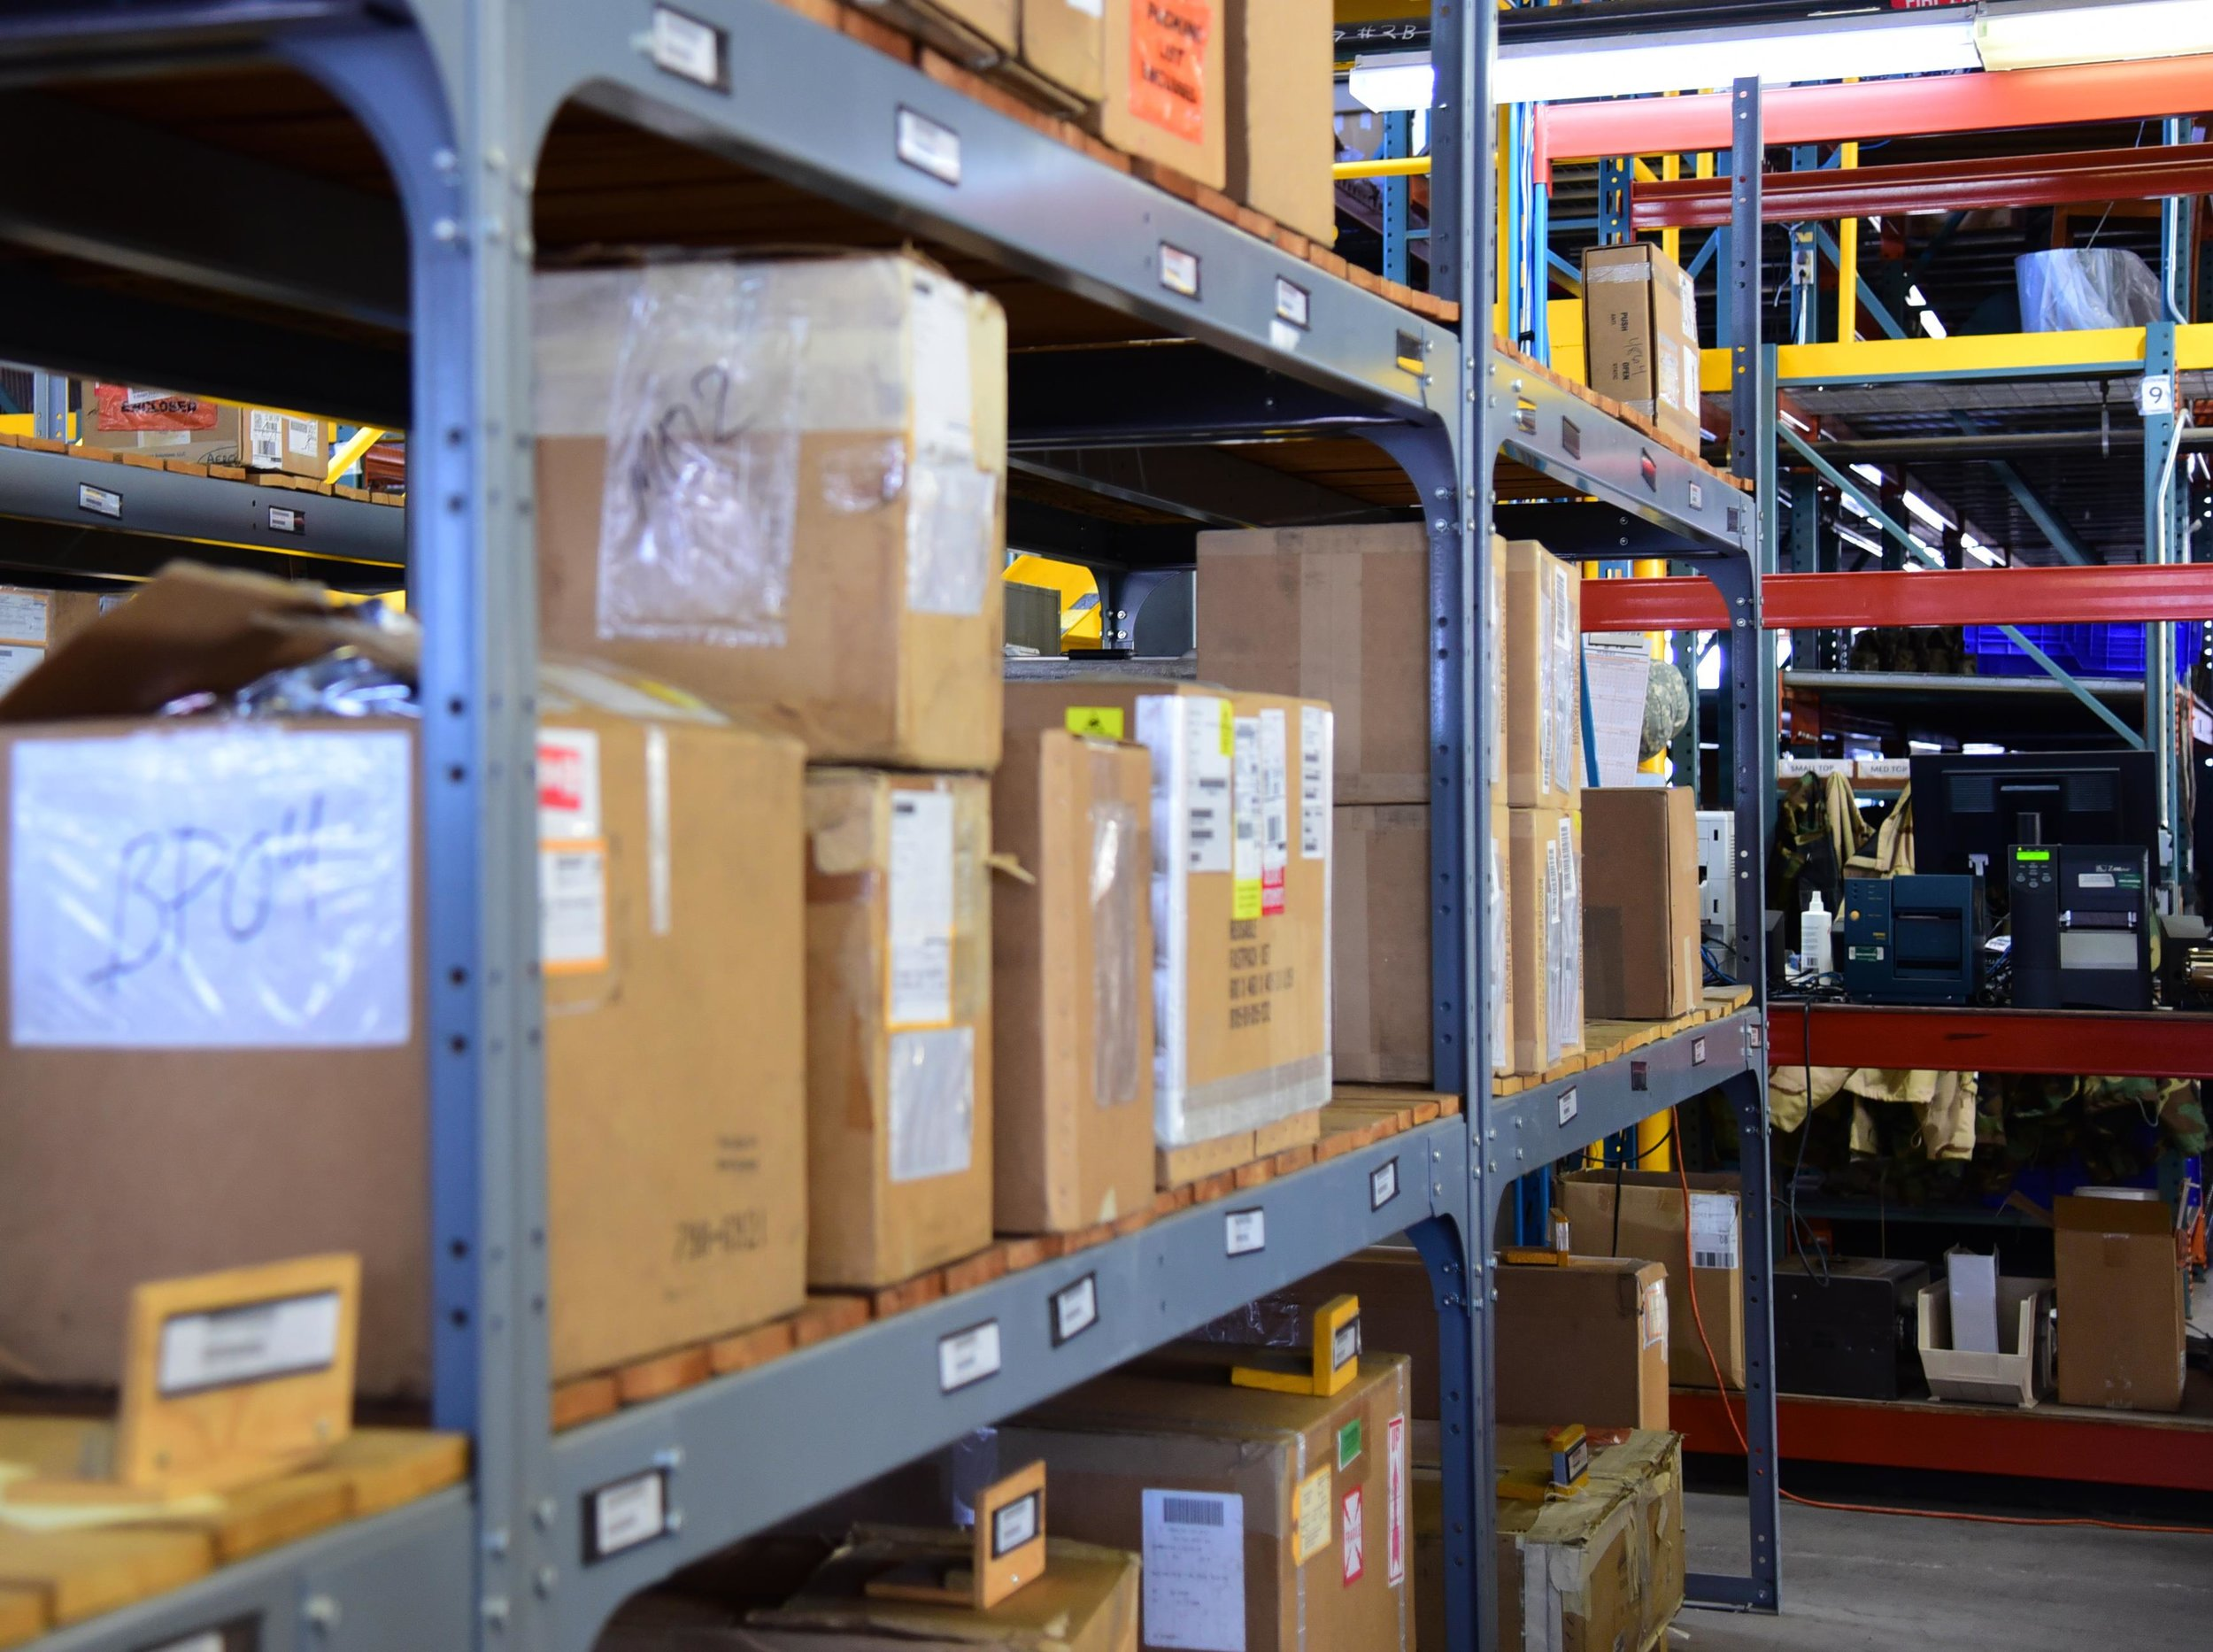 Dedicated rooms for quality control, product sorting, selection, and repacking